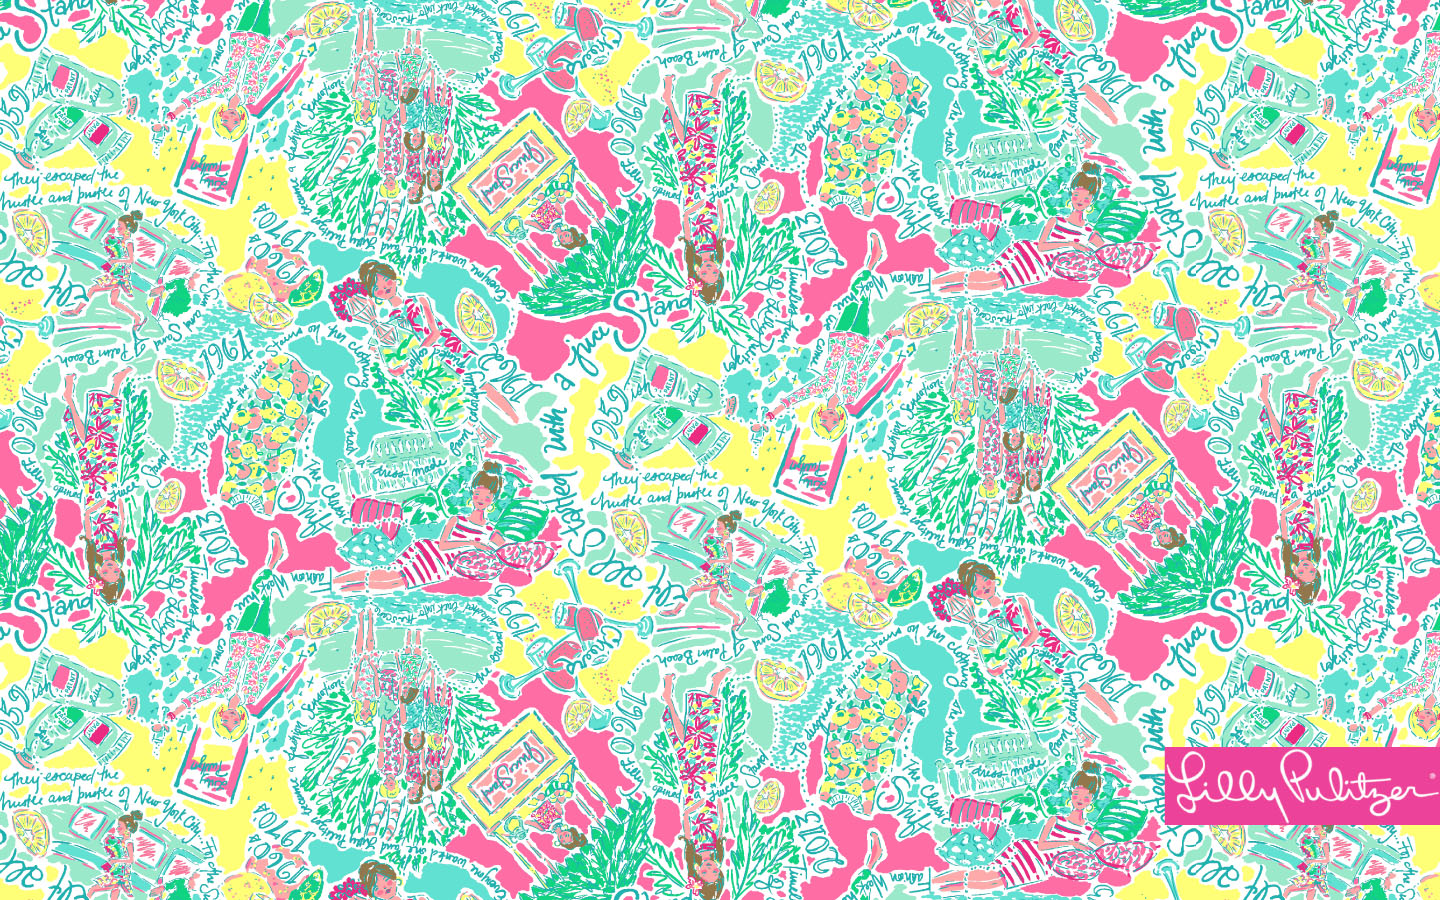 FREE Lilly Pulitzer Desktop Wallpapers Shopaholics Anonymous Blog 1440x900